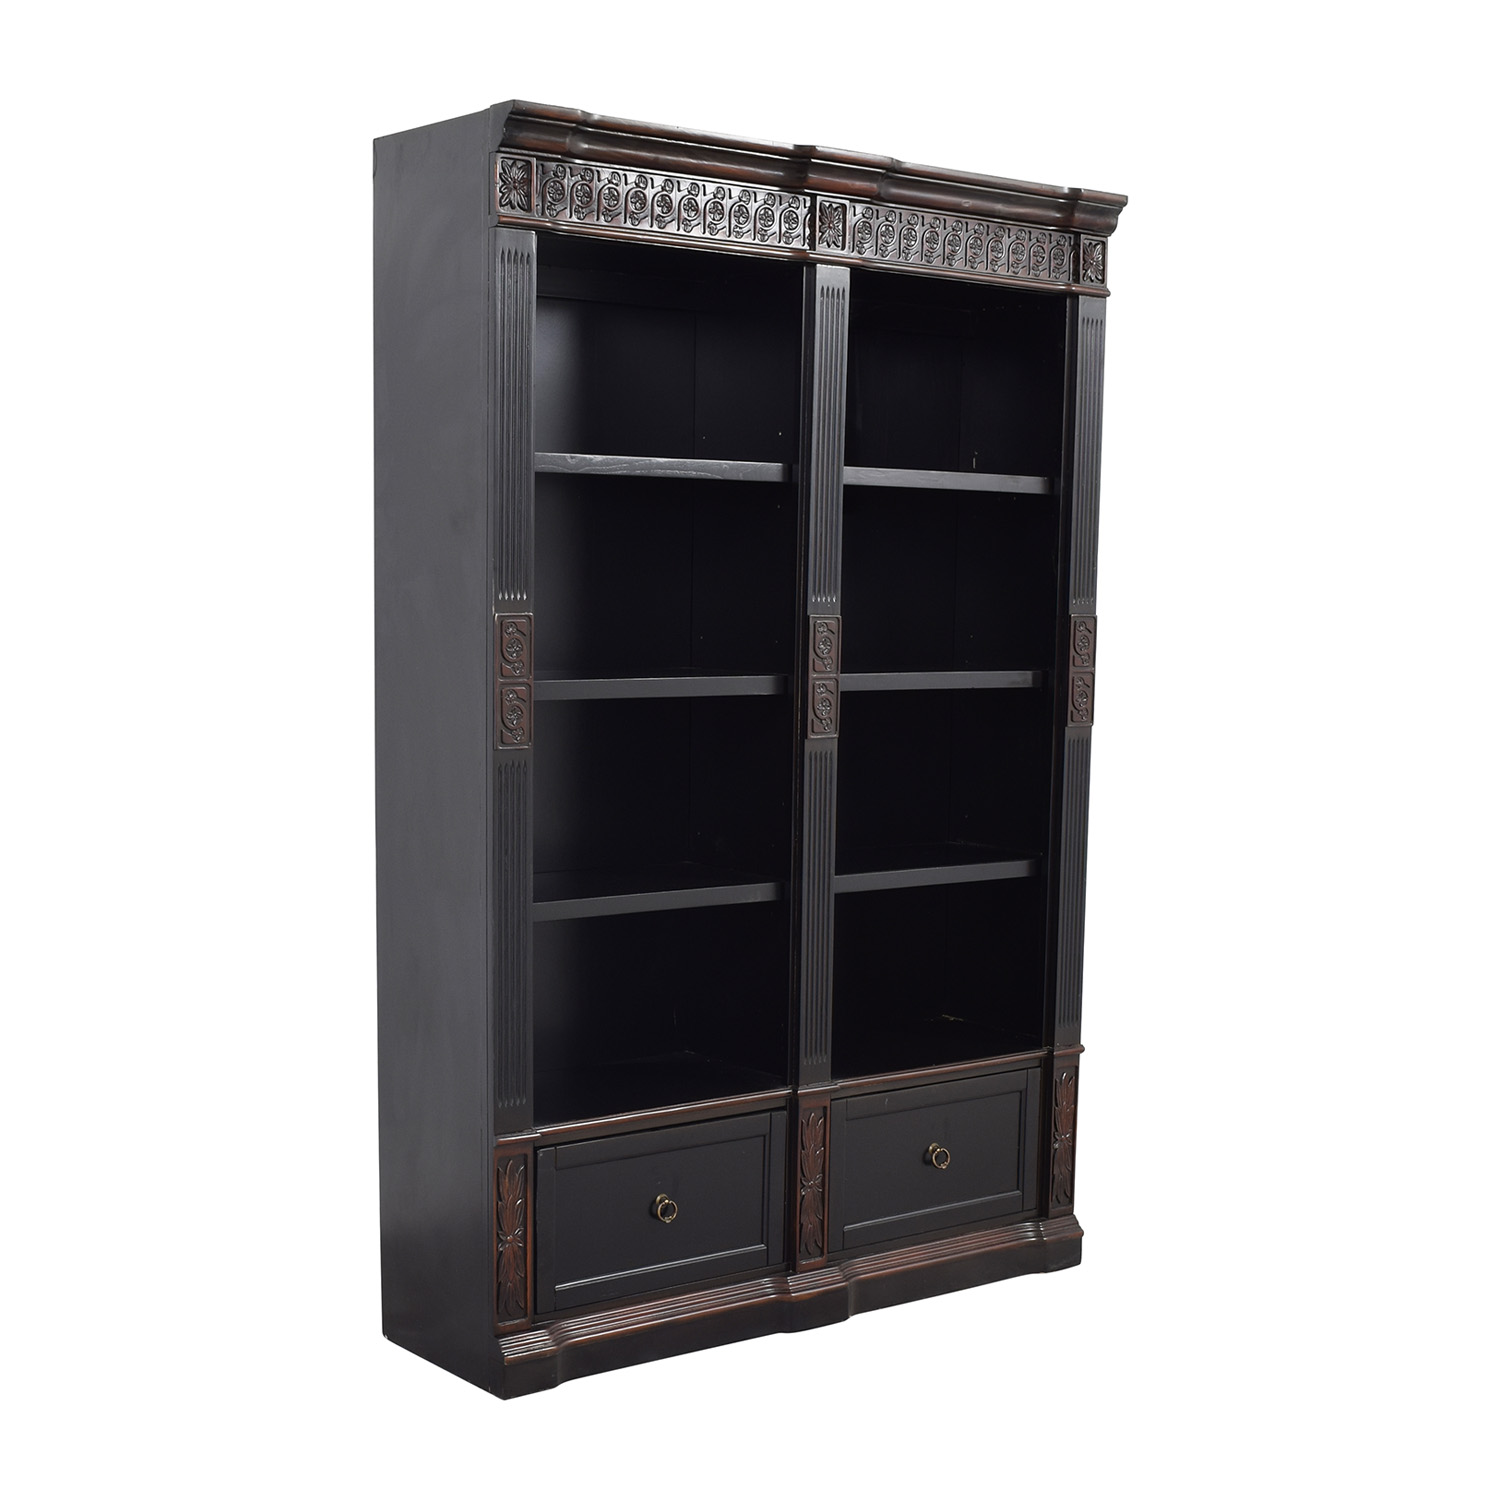 Coaster Furniture Coaster Furnitiure Nicolas Traditional Carved Double Bookcase coupon